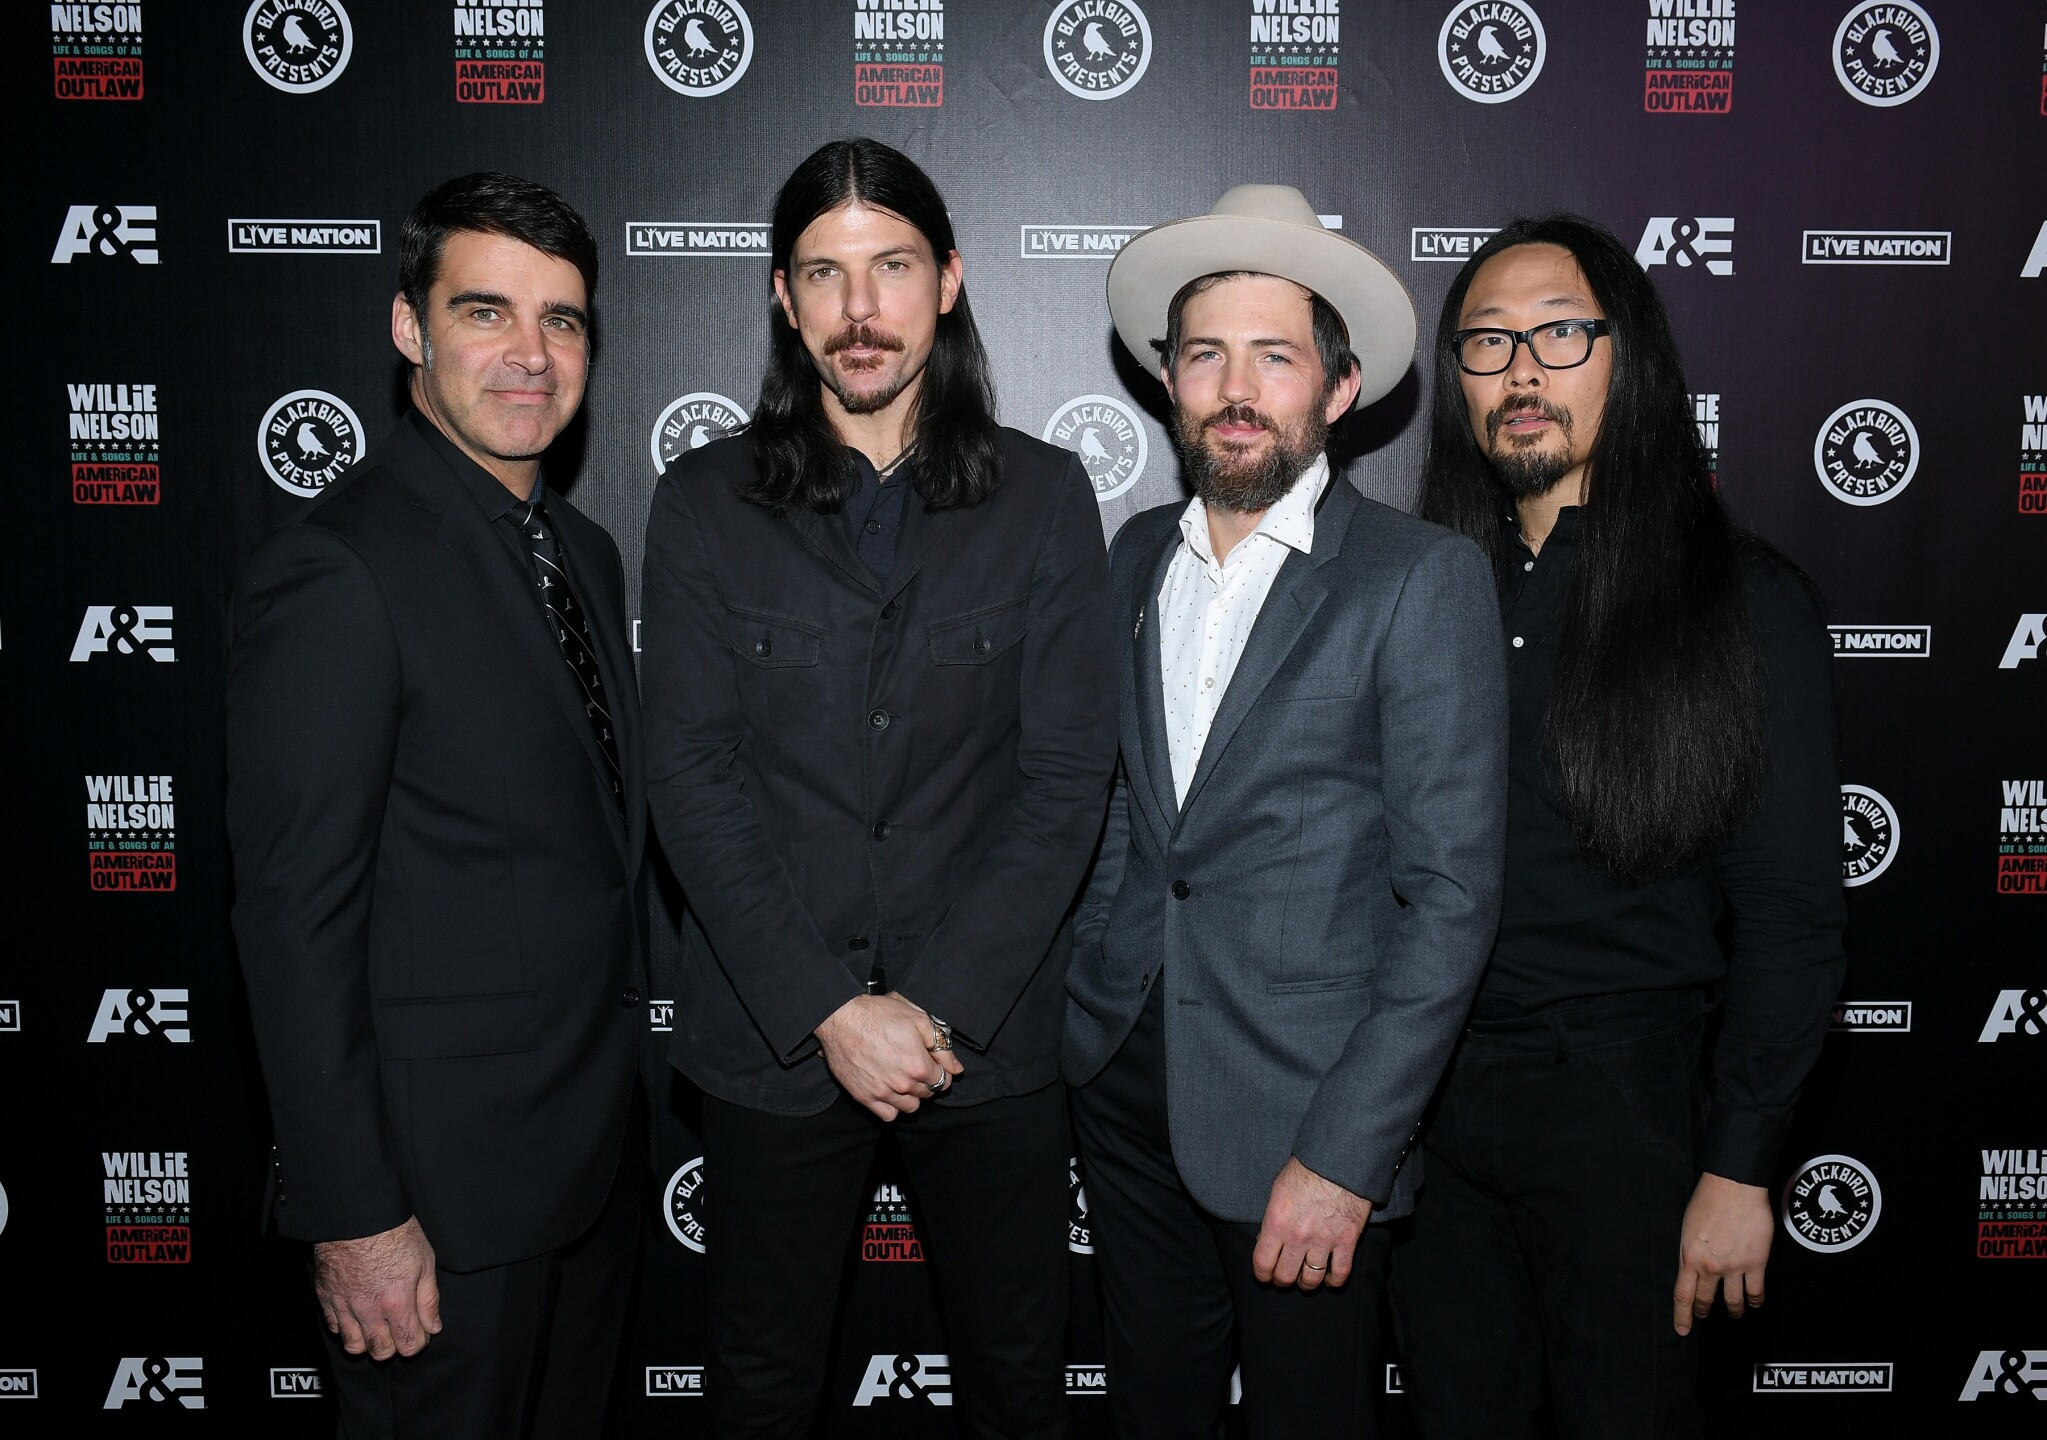 The Avett Brothers will be performing at Summerfest 2019, on June 27!